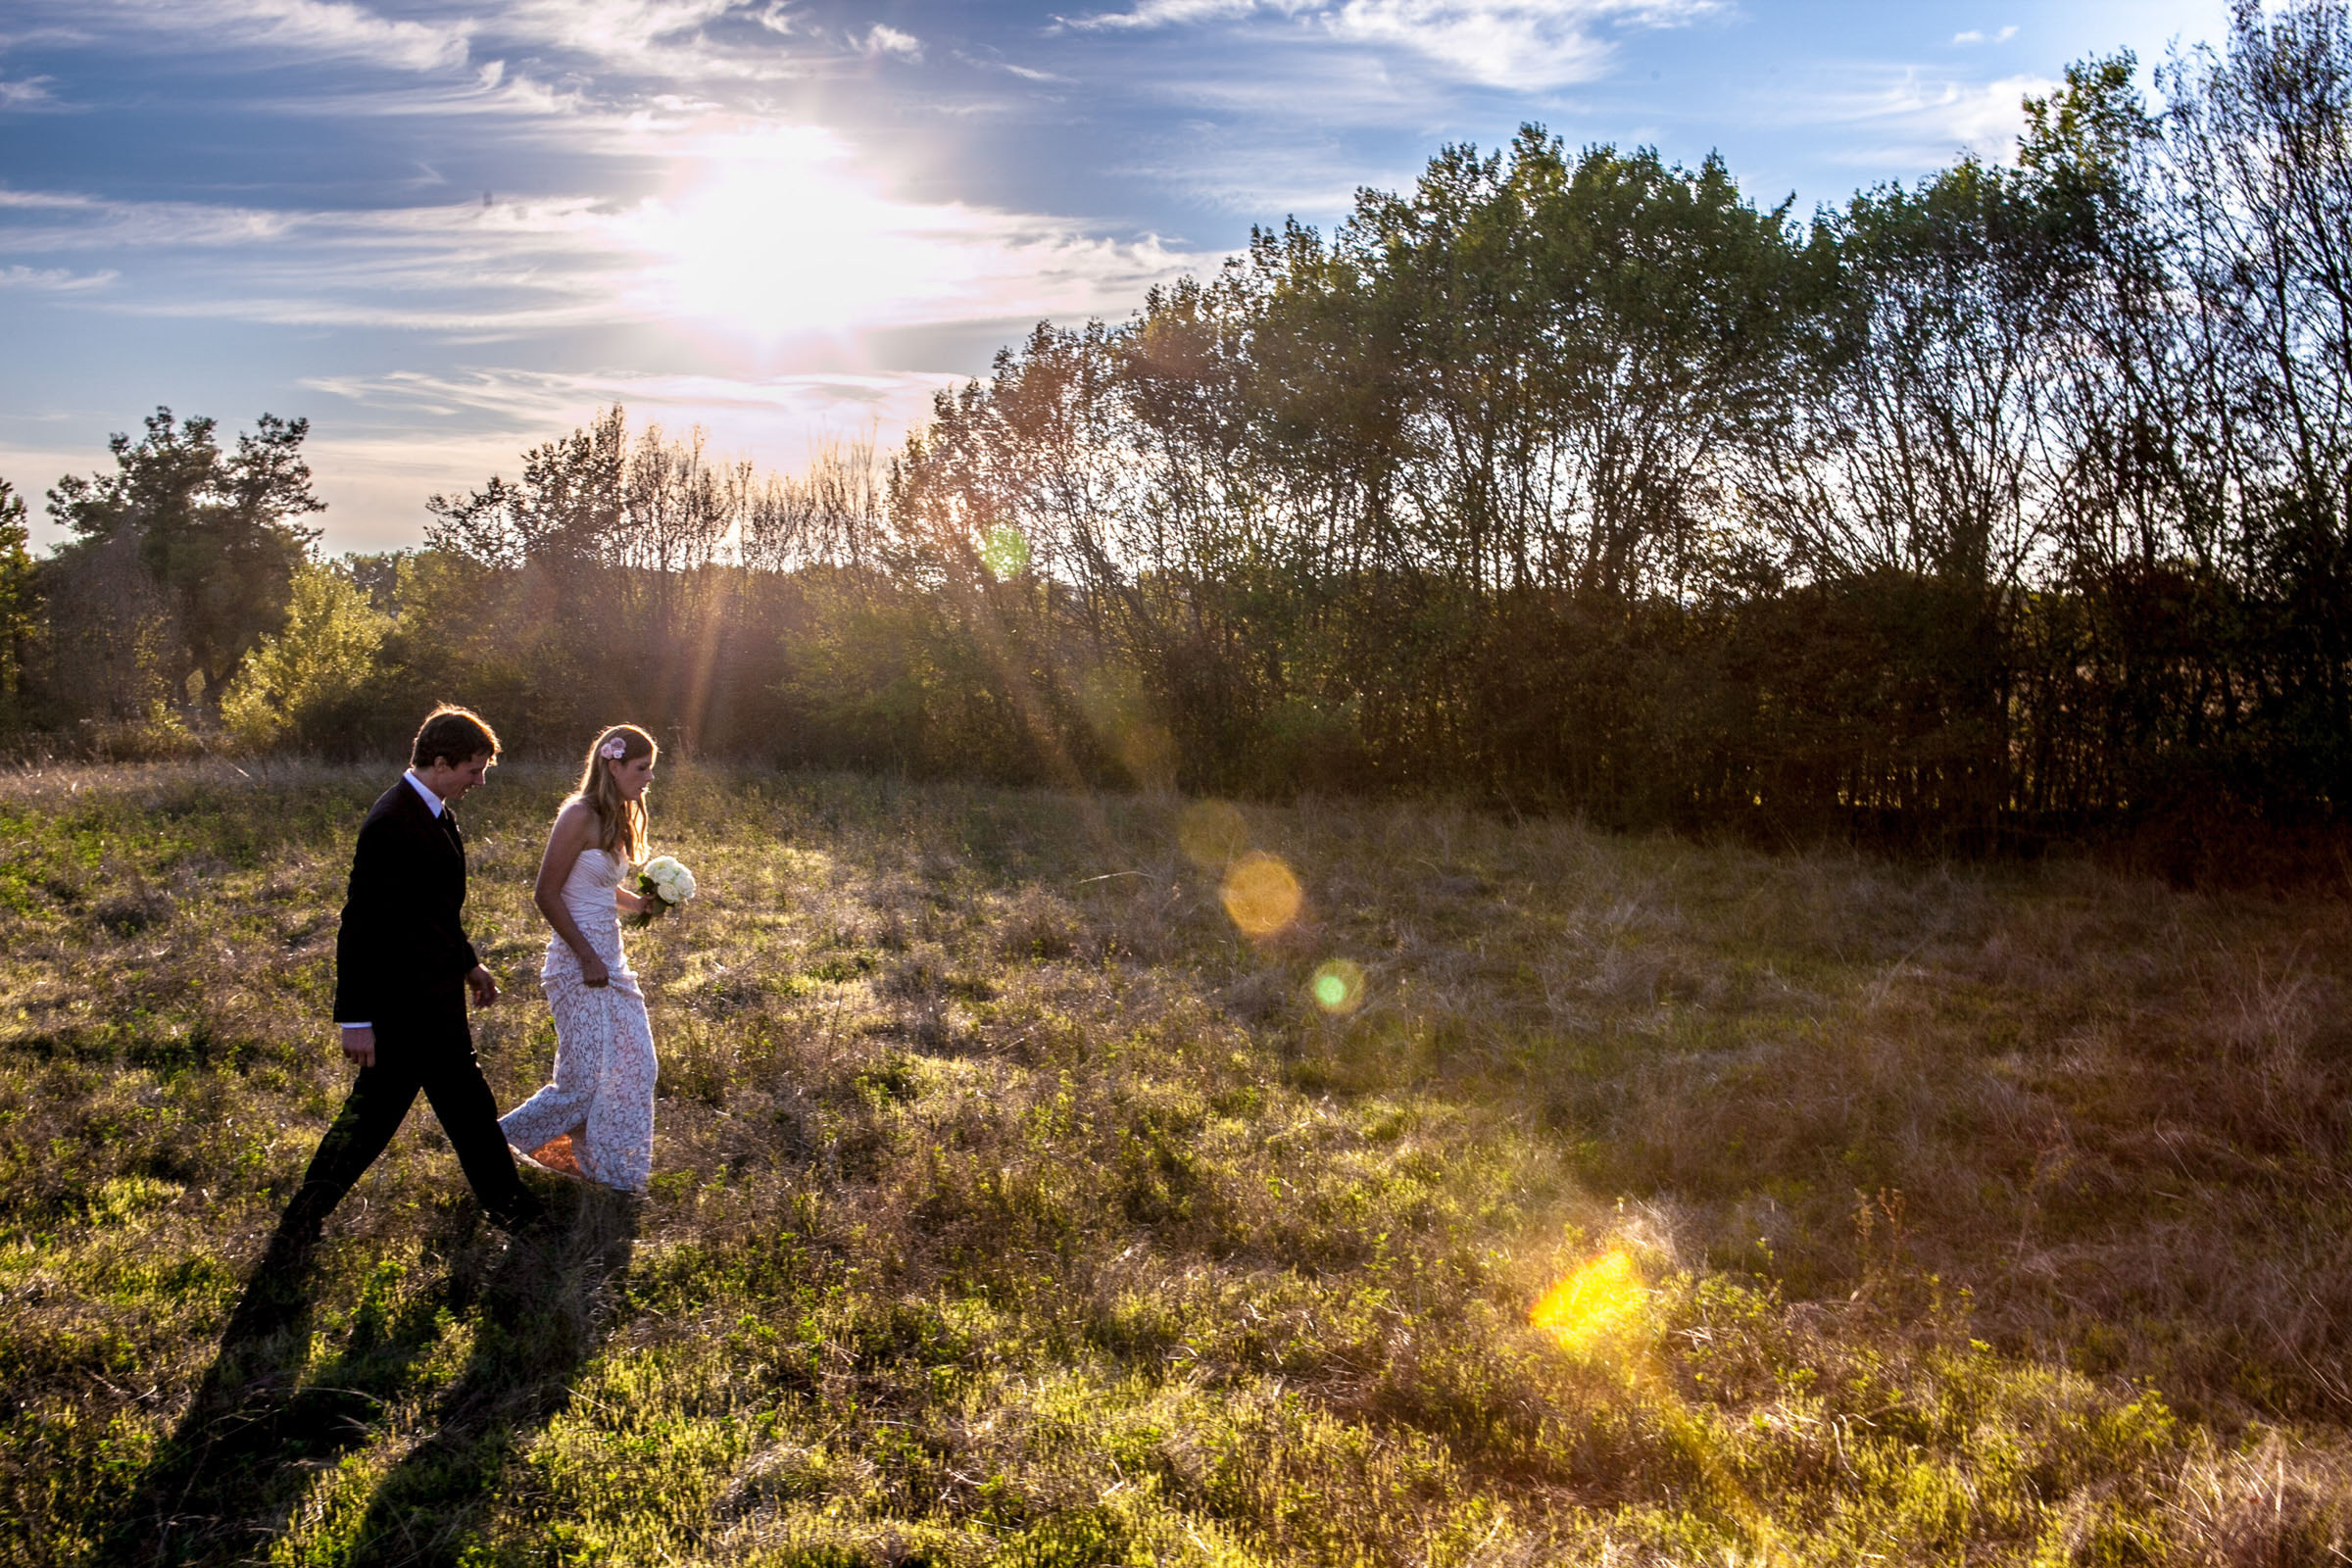 tuscany-outdoor-sunset-wedding-bride-groom